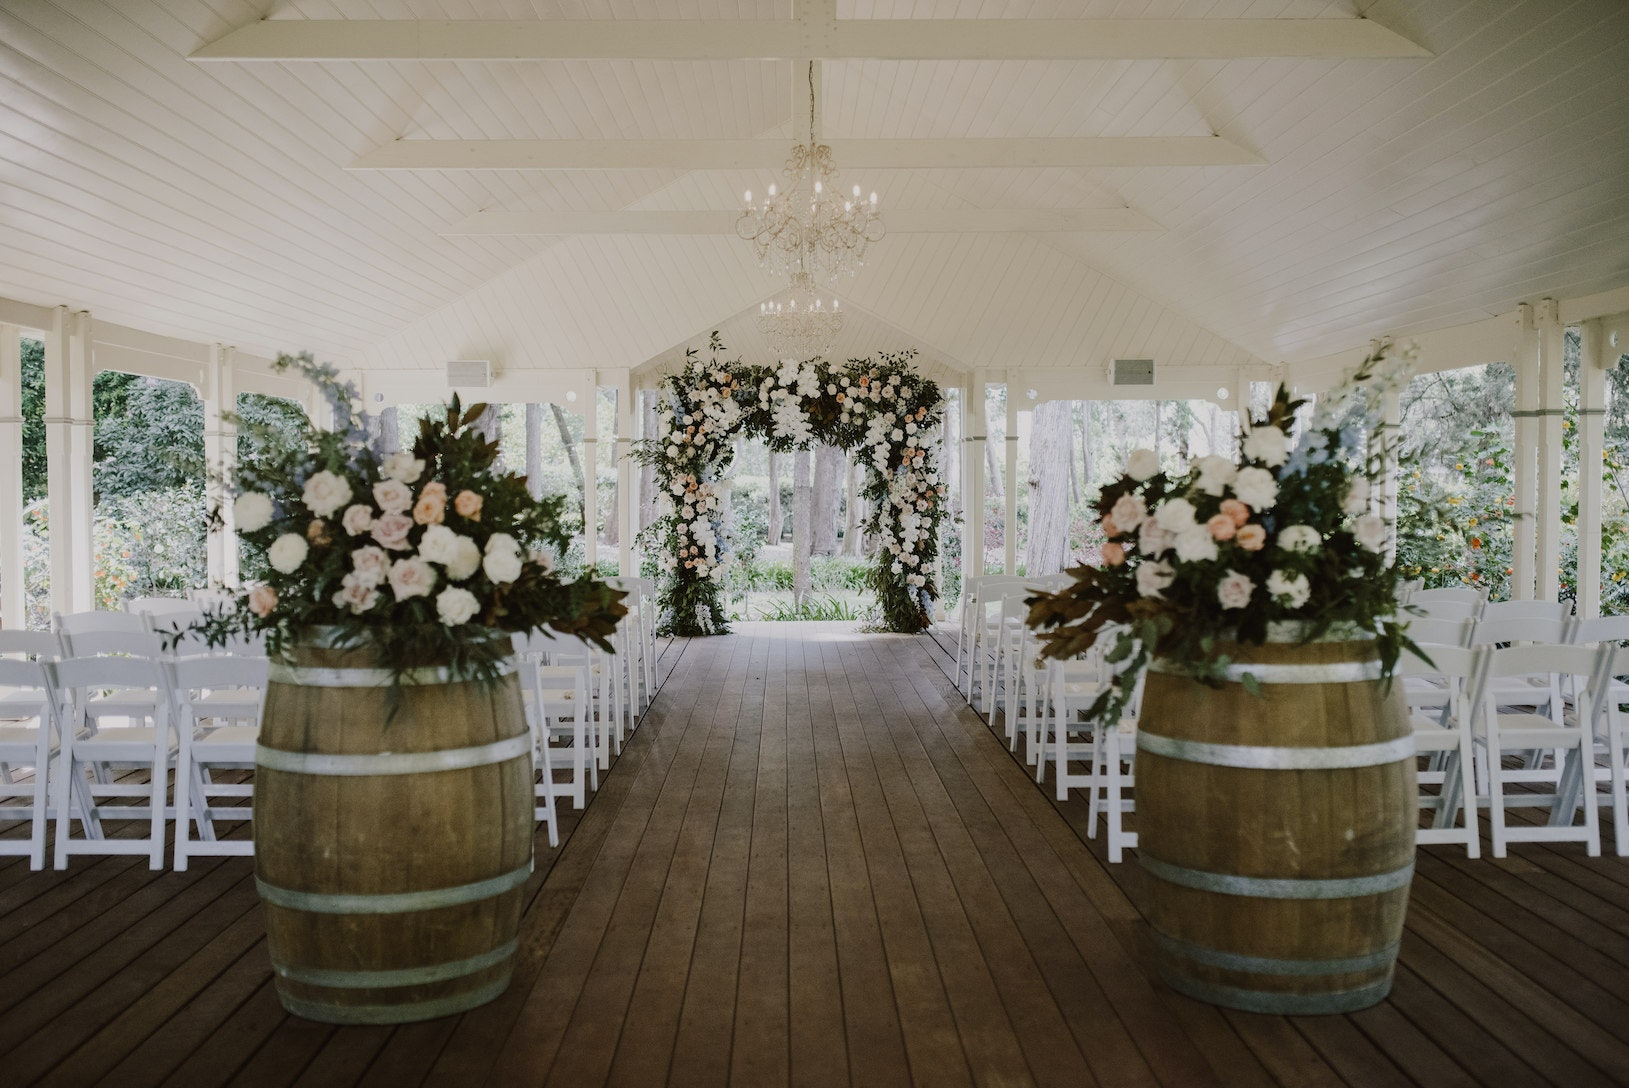 Wine barrels with floral arrangements on top and floral arbour in the middle